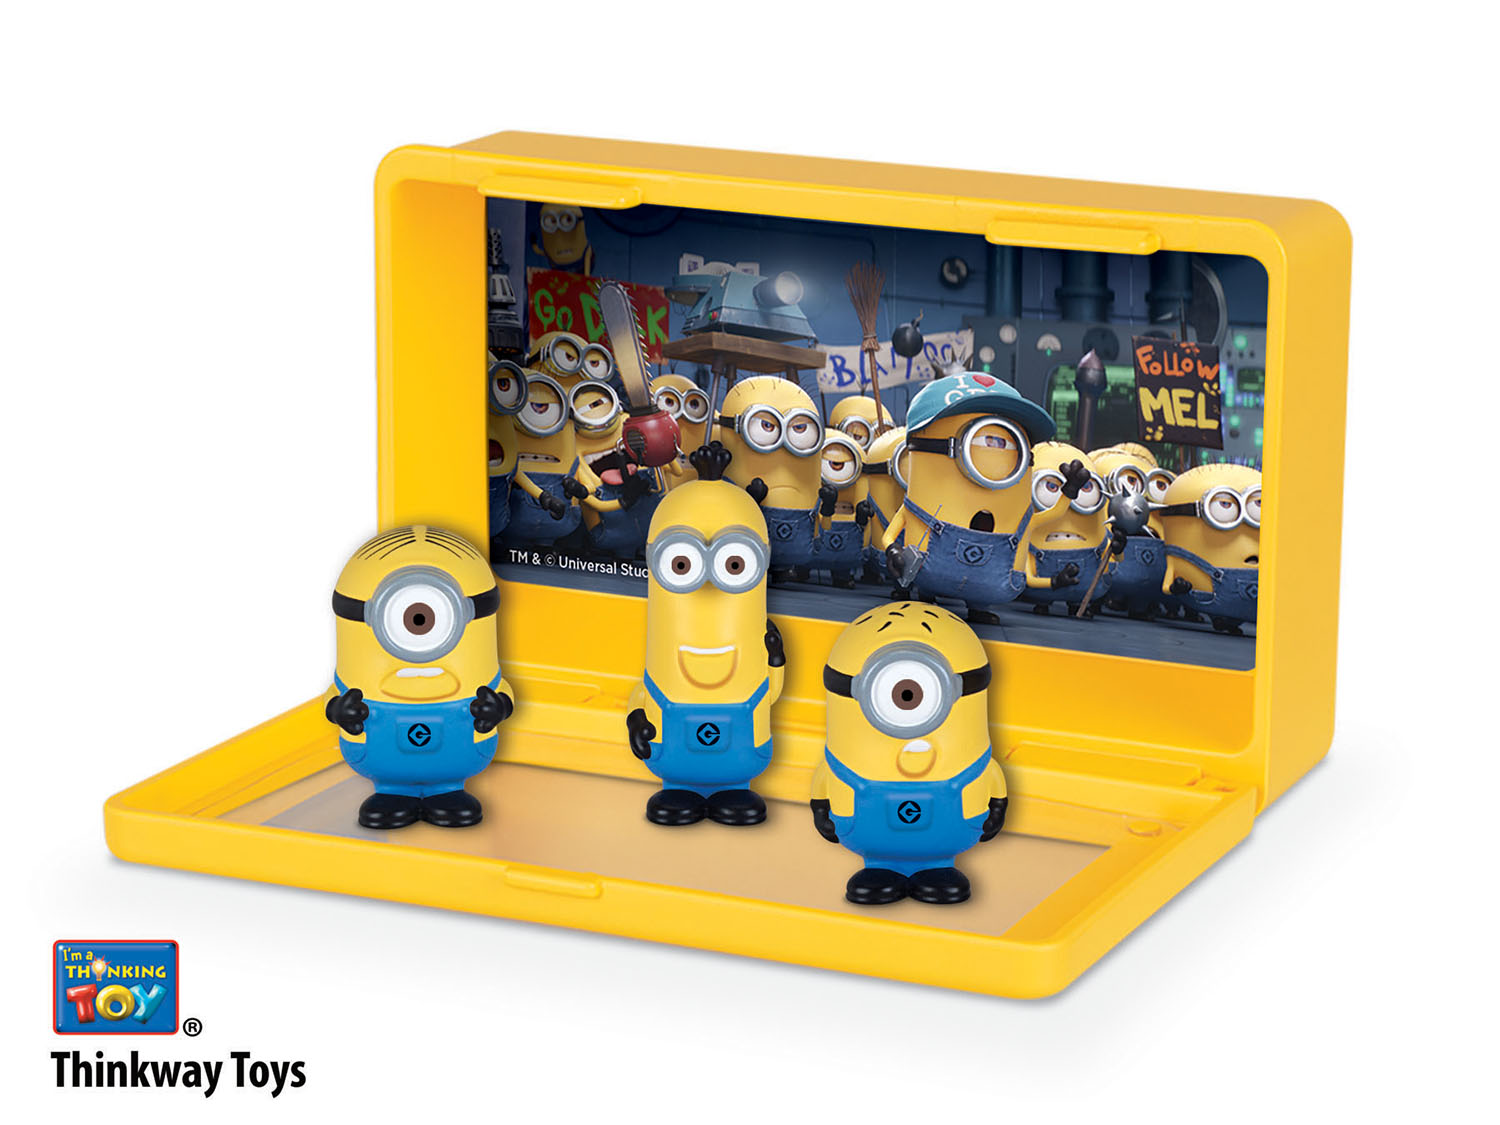 decostructing minion in despicable me One minion calls for mutiny against gru in the summer sequel, despicable me 3.